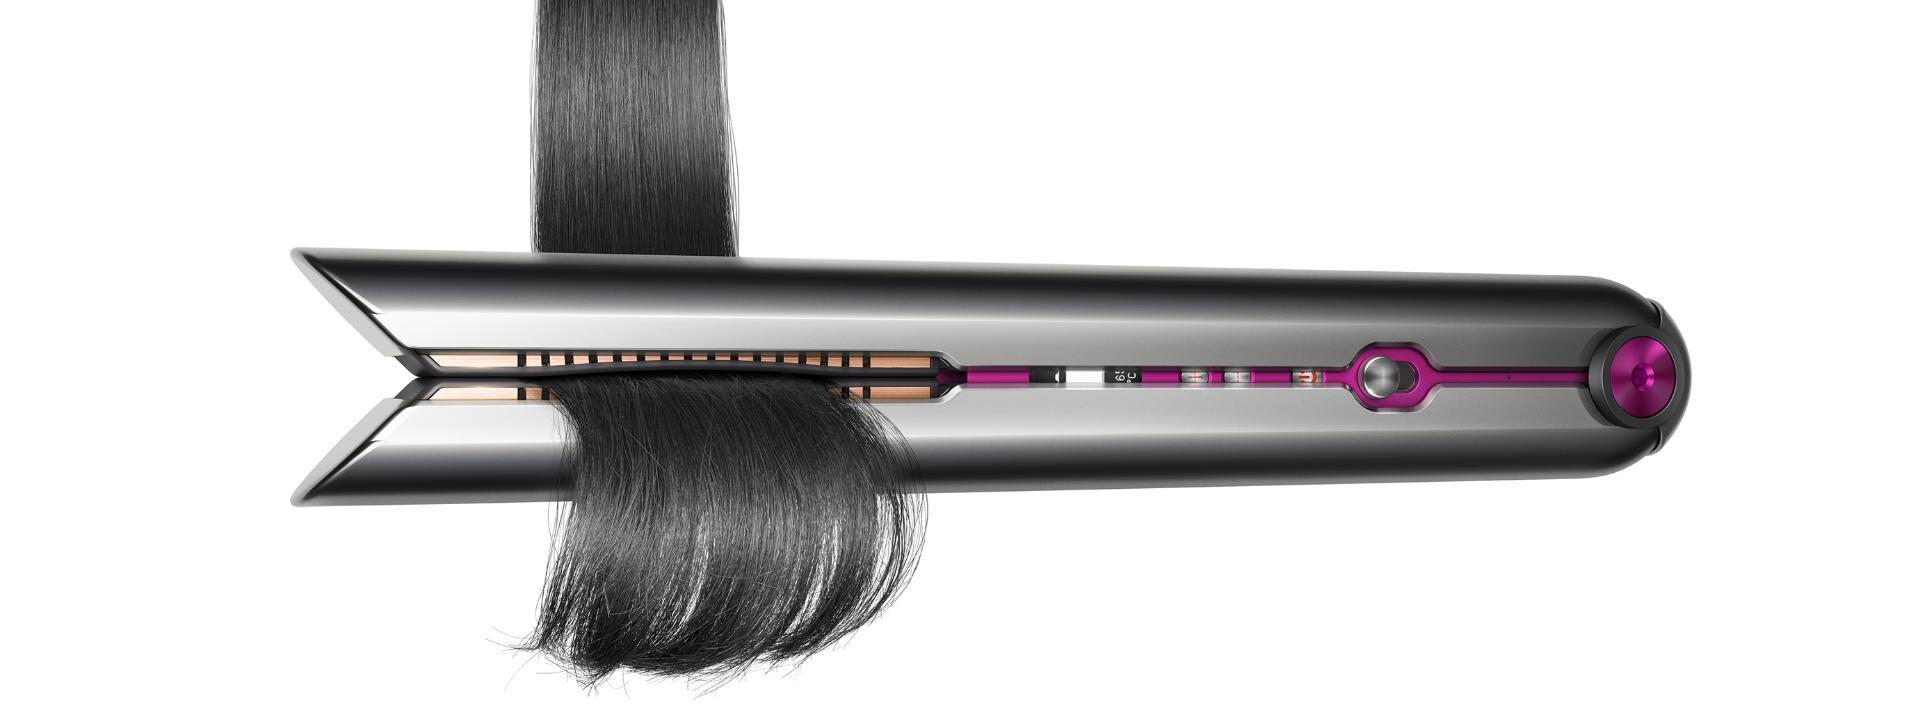 Dyson Corrale™ straightener using flexing plate technology